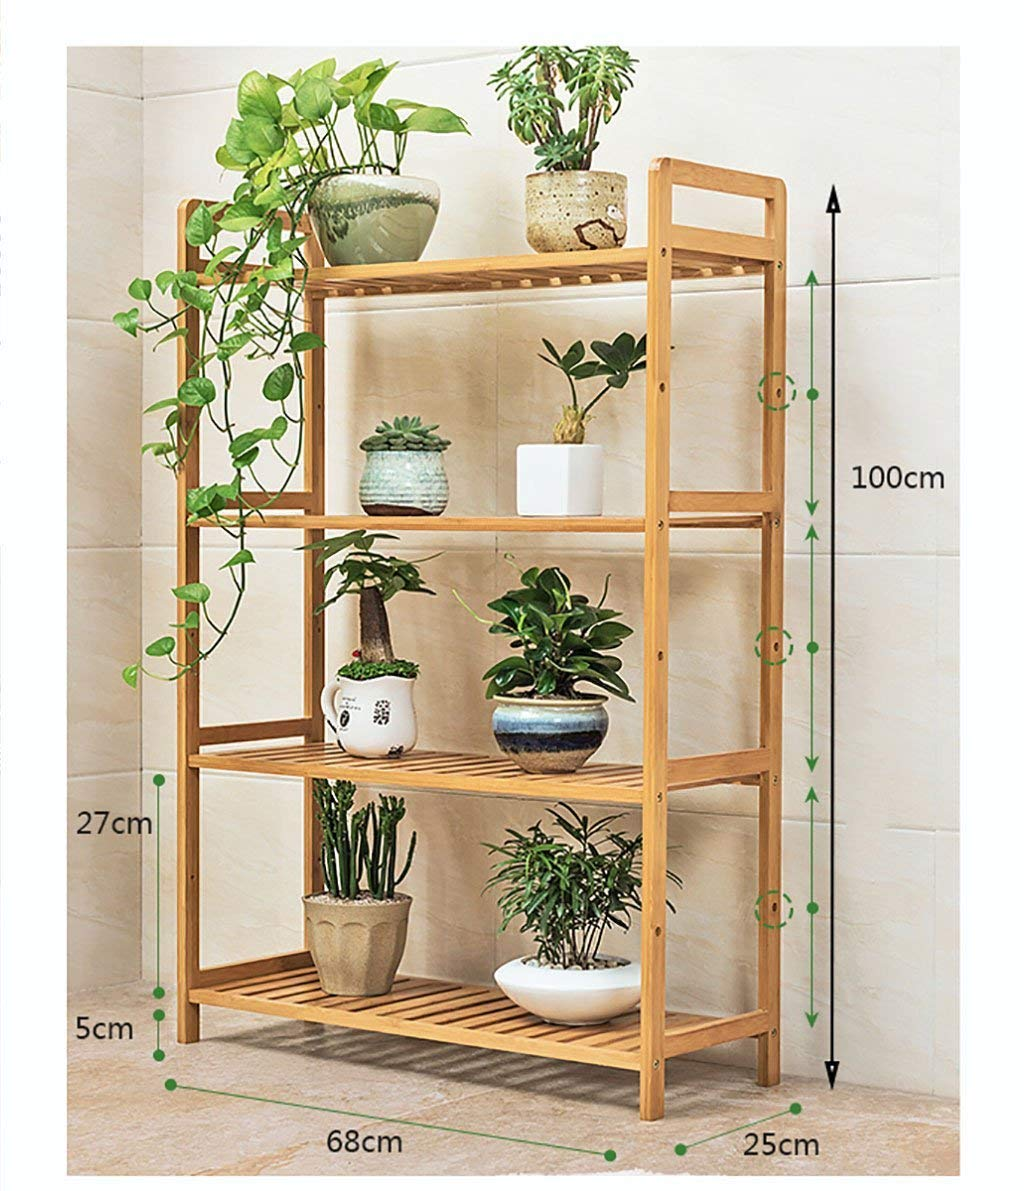 Chairs FL Pergolas/flower racks Multi-storey floral display Multi-function indoor/outdoor wood flower stand Simple modern style flower stand flower display stands (Size : 6825100cm)